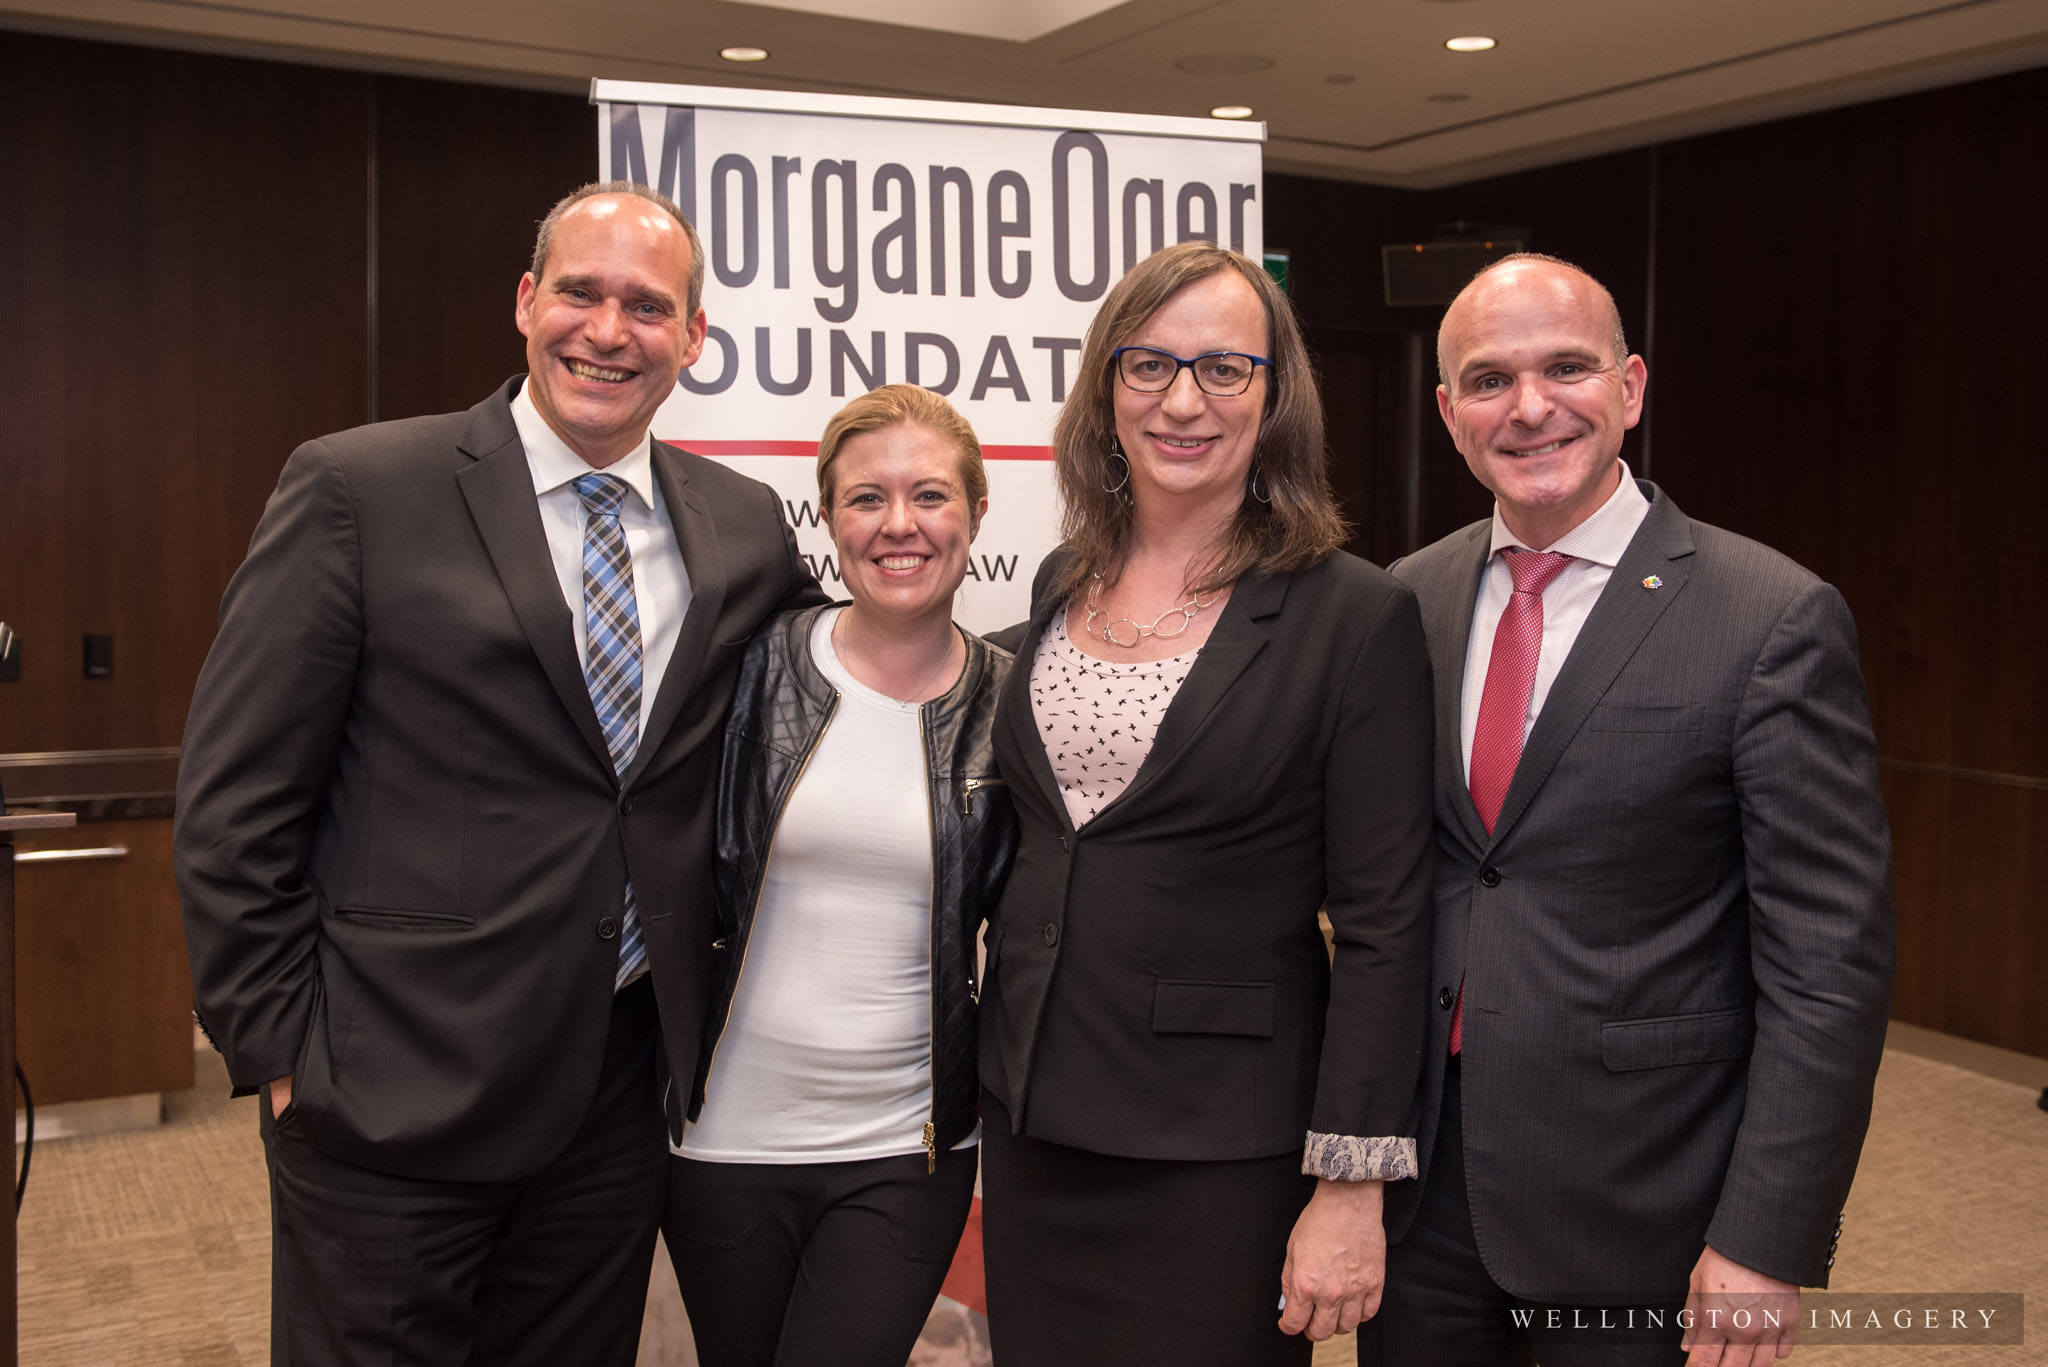 (From the left) NDP House Leader Guy Caron, the Hon.Michelle Rempel, Trans rights activist Morgane Oger, and LGBTQ2 Special Advisor to the Prime Minister Randy Boissonnault pose for a family photo at the May 29 reception for inclusion on Parliament Hill